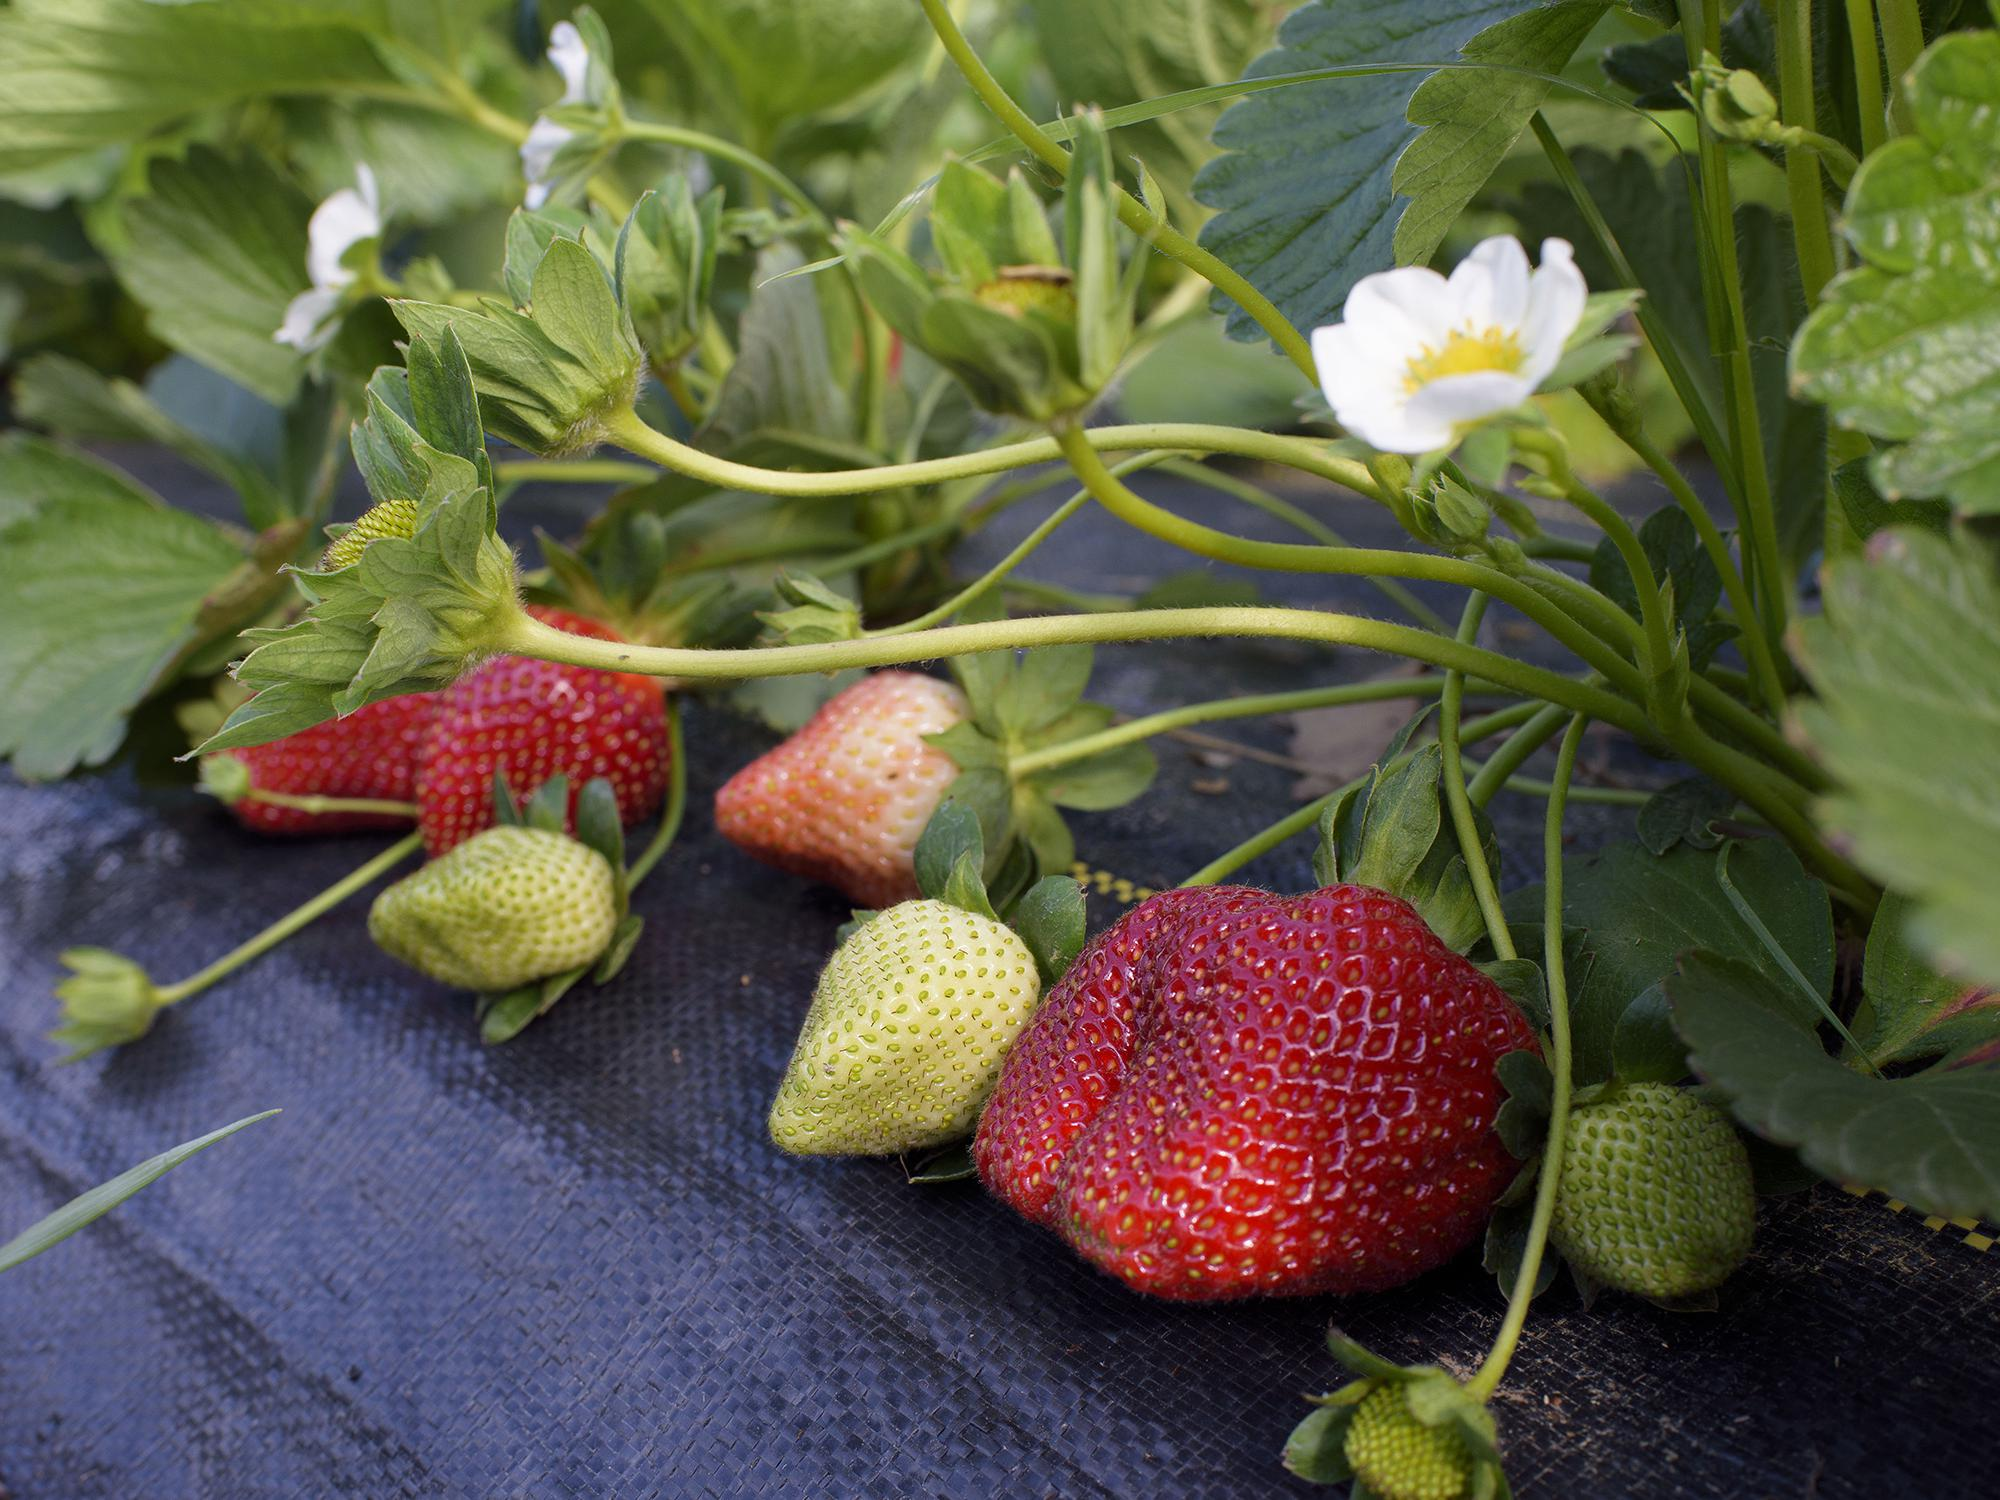 Strawberries in various stages of ripening sit on top of black weed barrier matting.